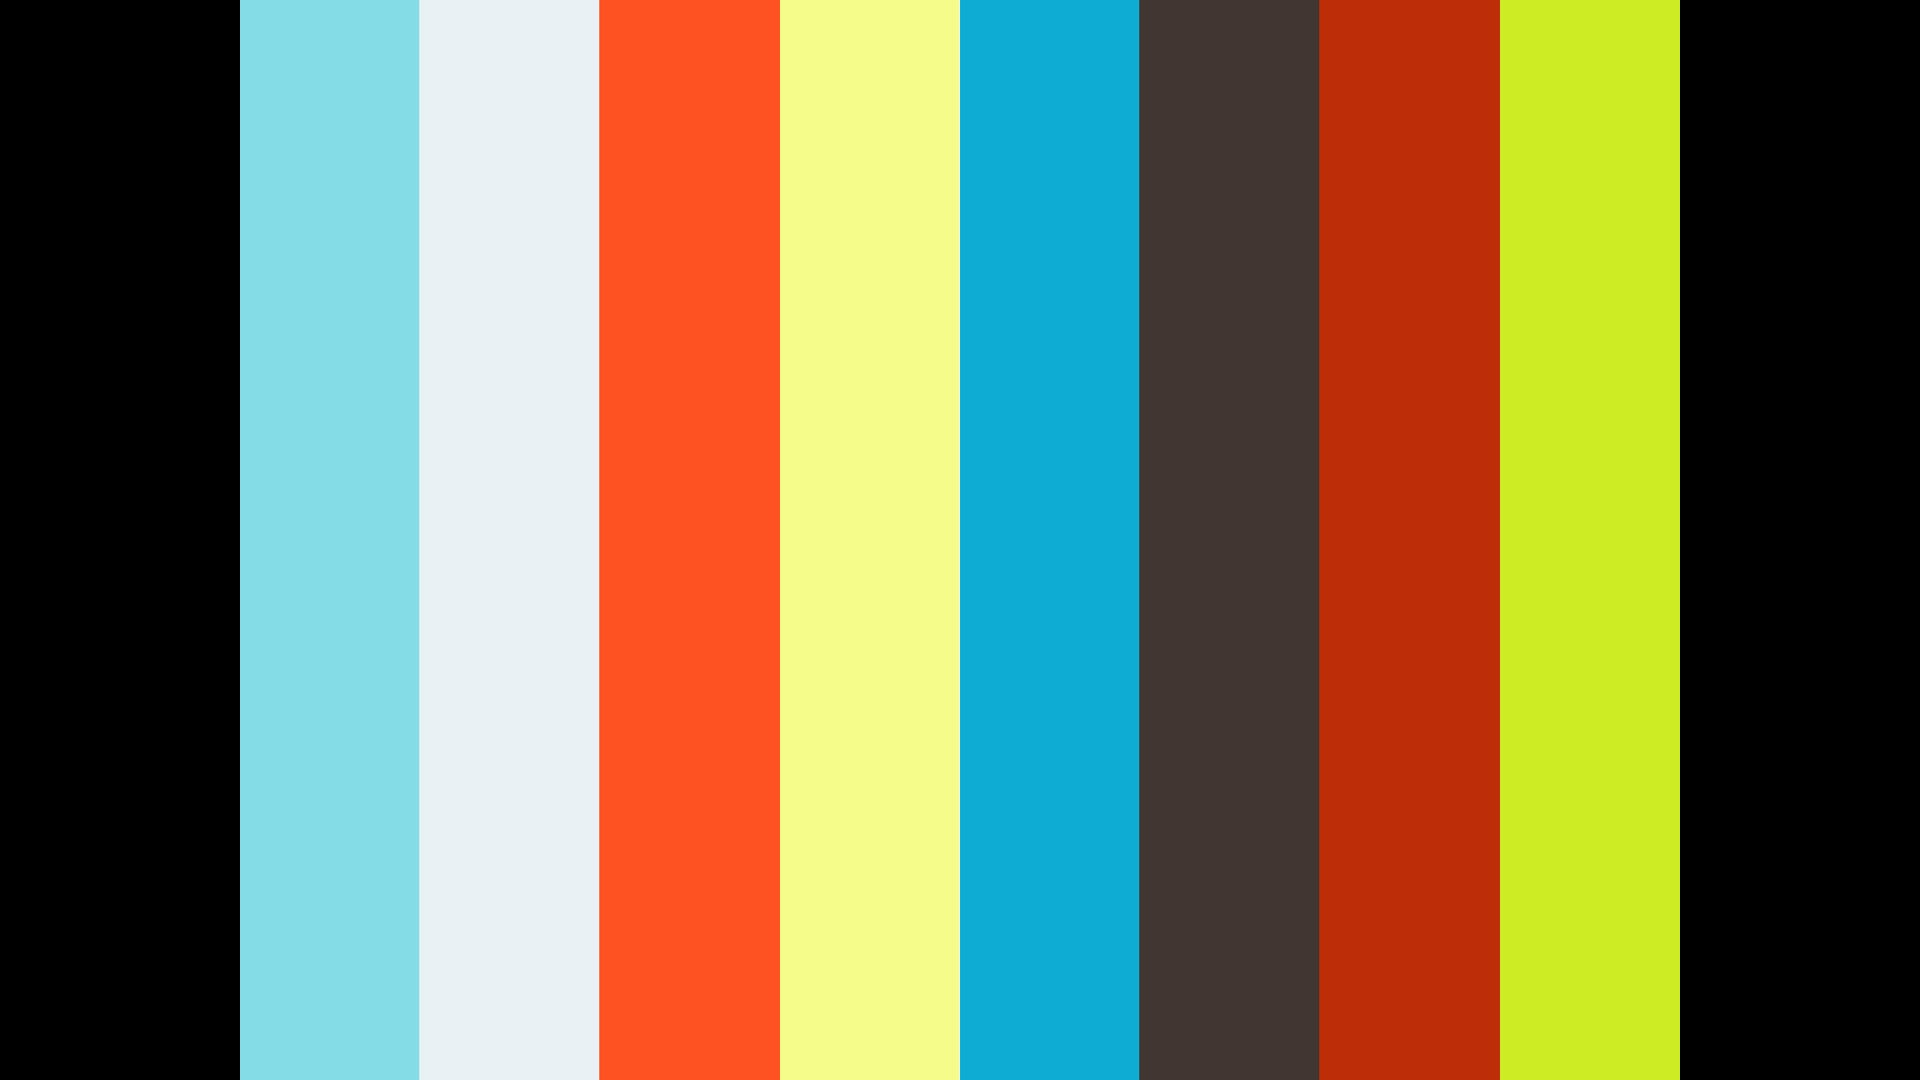 Timo and Patrick highlight wedding video